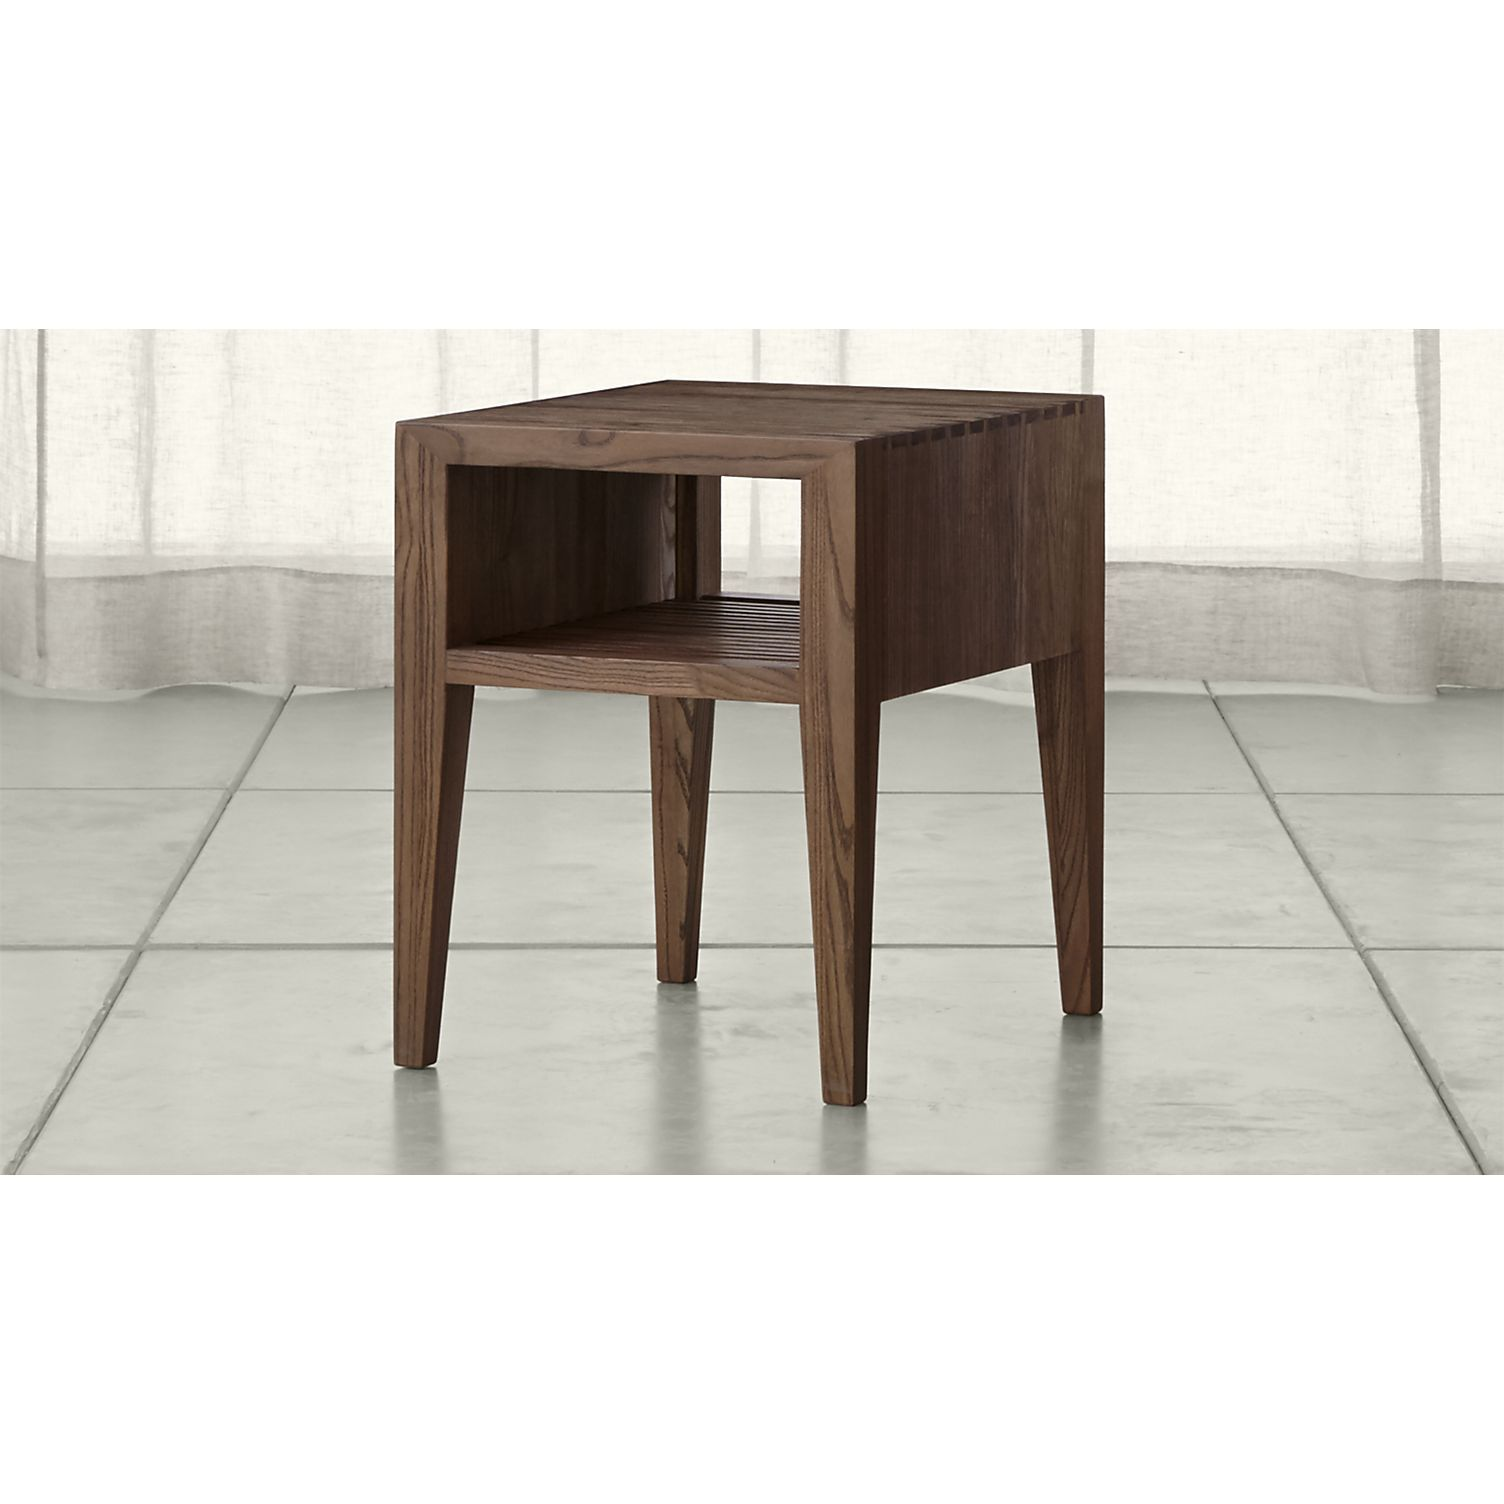 Marin Shiitake Solid Wood Side Table Crate and Barrel